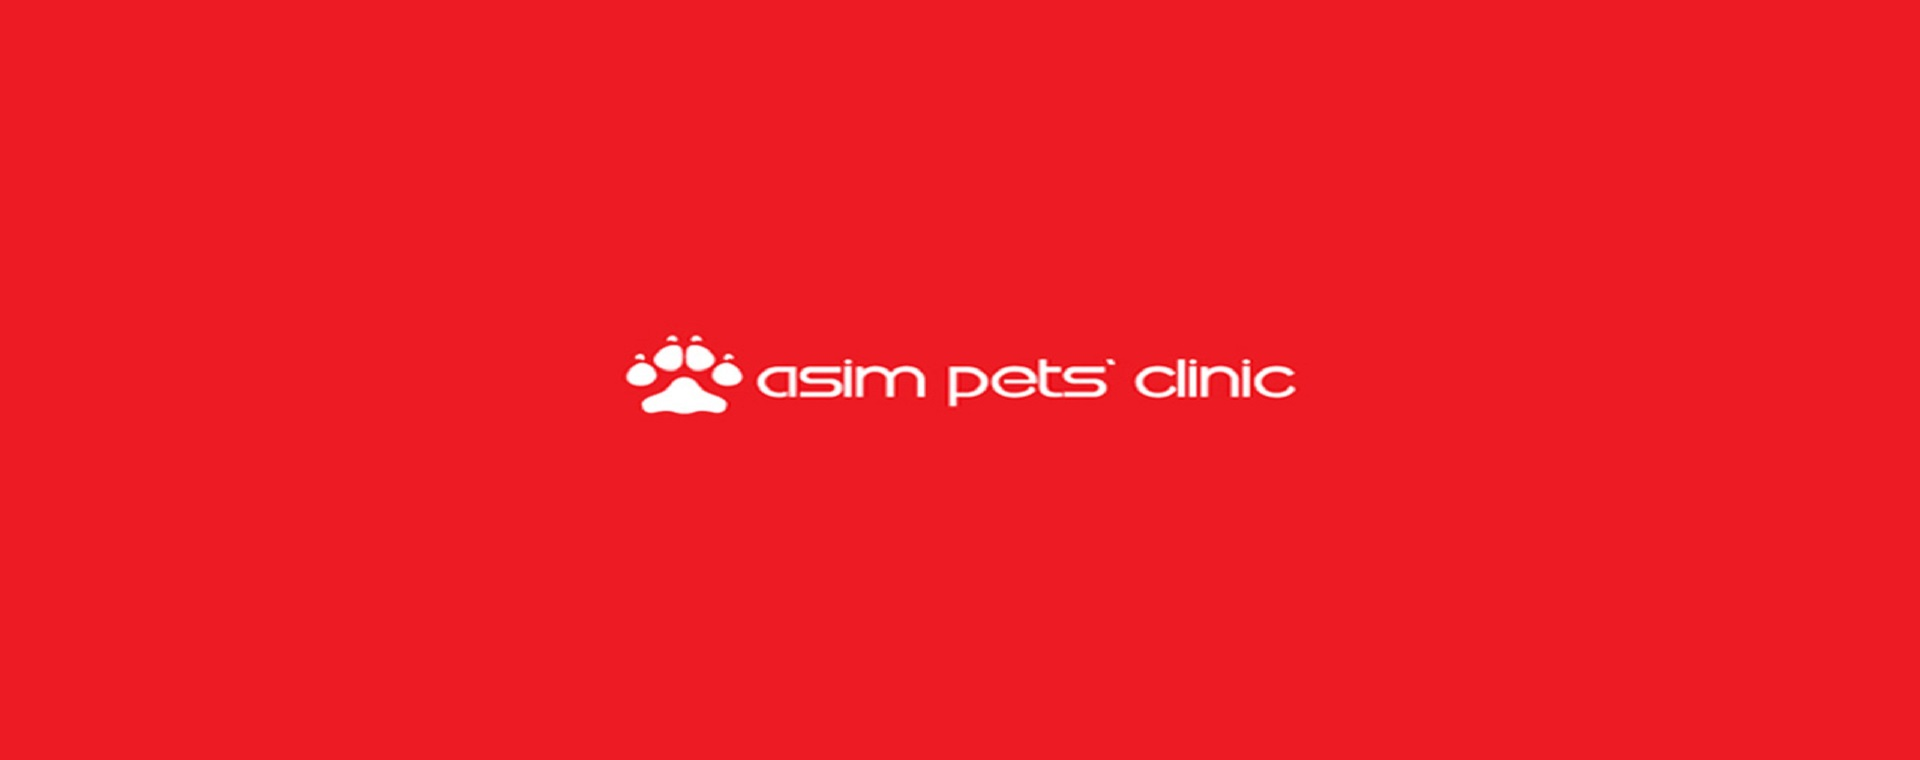 Asim pet clinic front